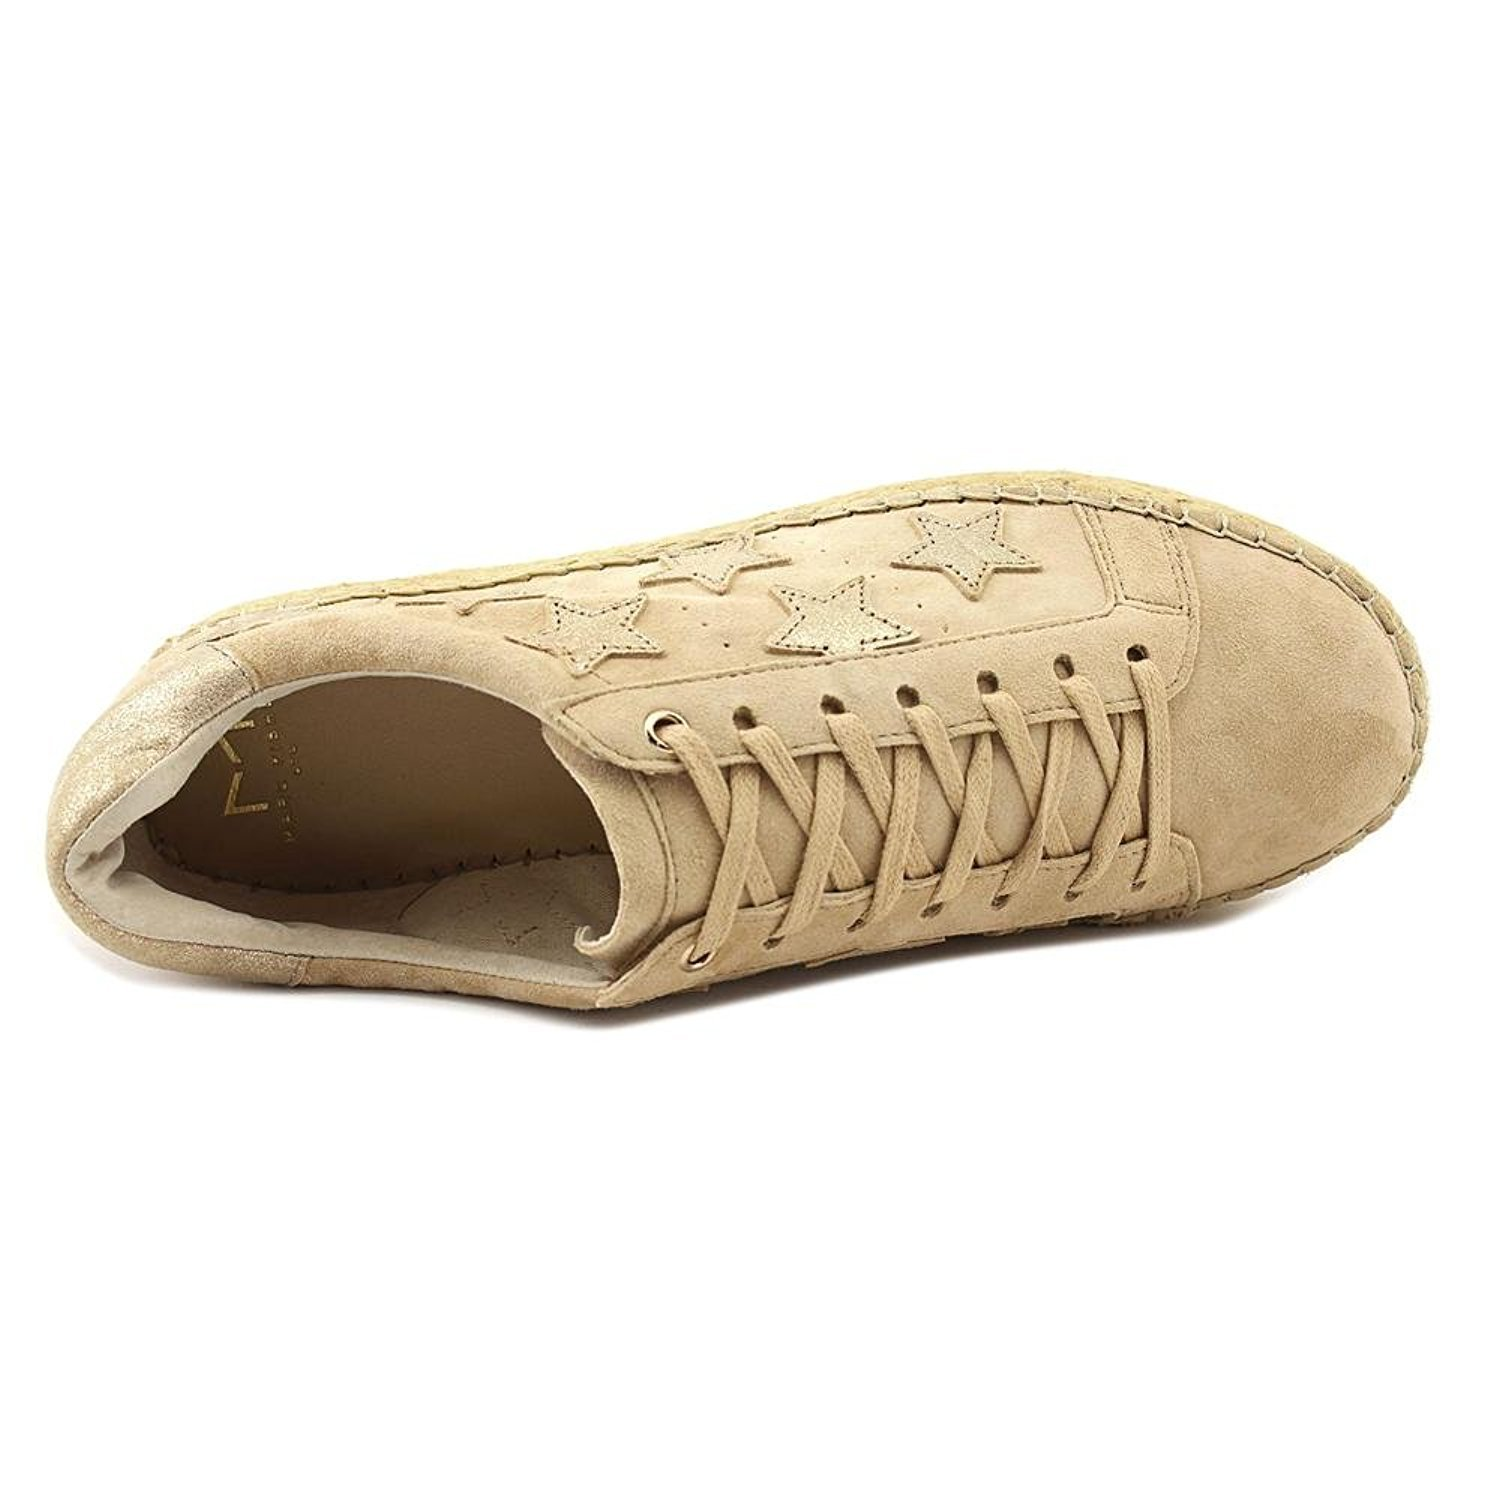 Marc Fisher Womens Marcia Leather Low Top Lace Up, Light Natural, Size 6.0 by Marc Fisher (Image #2)